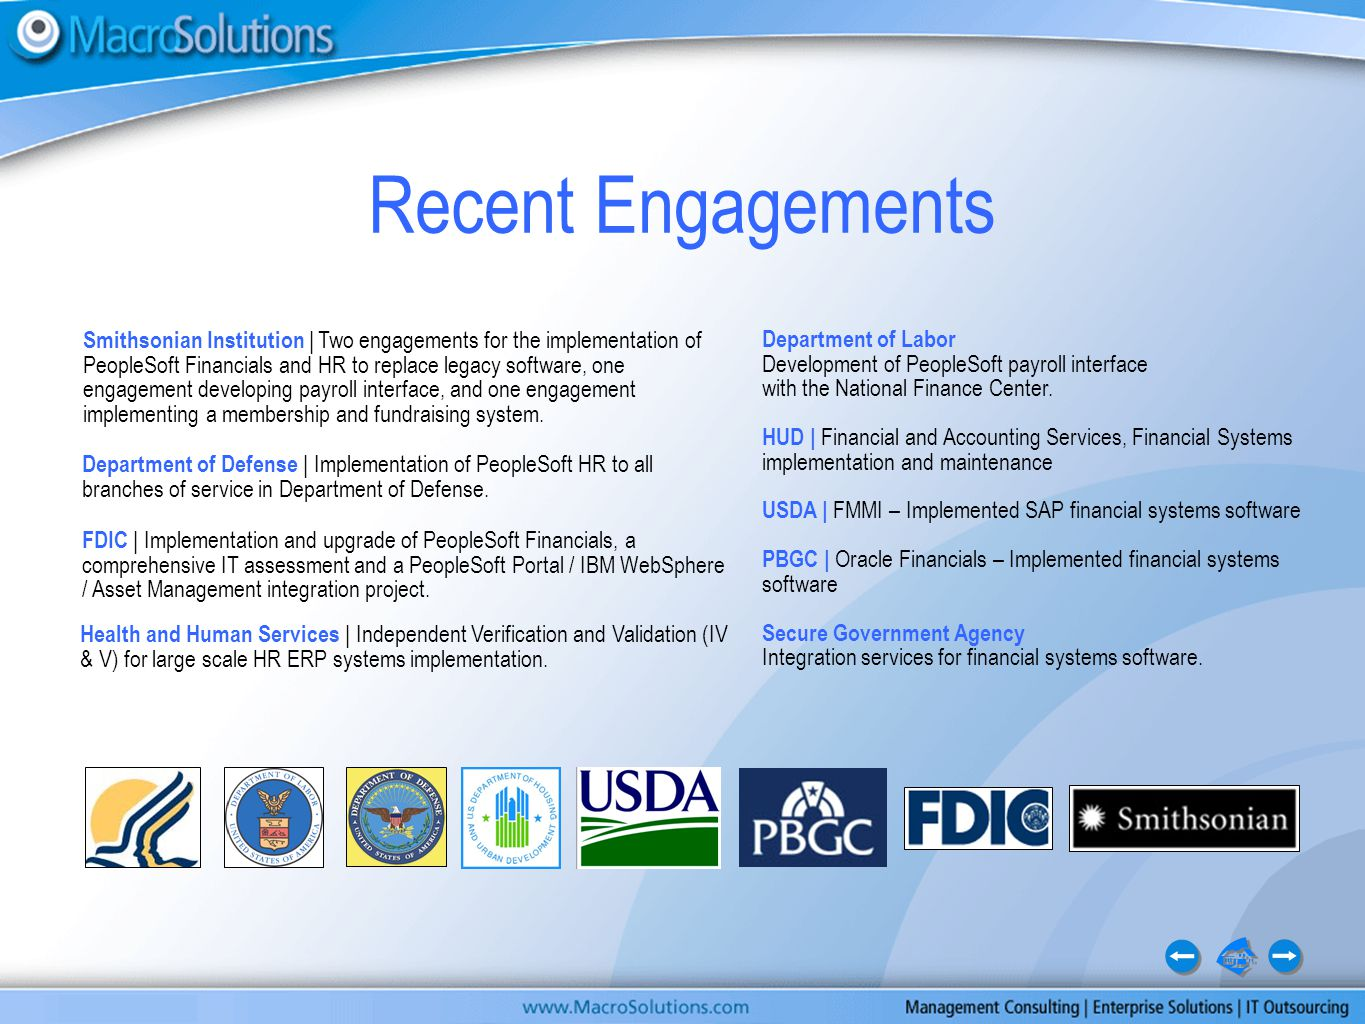 Department of Labor Development of PeopleSoft payroll interface with the National Finance Center.